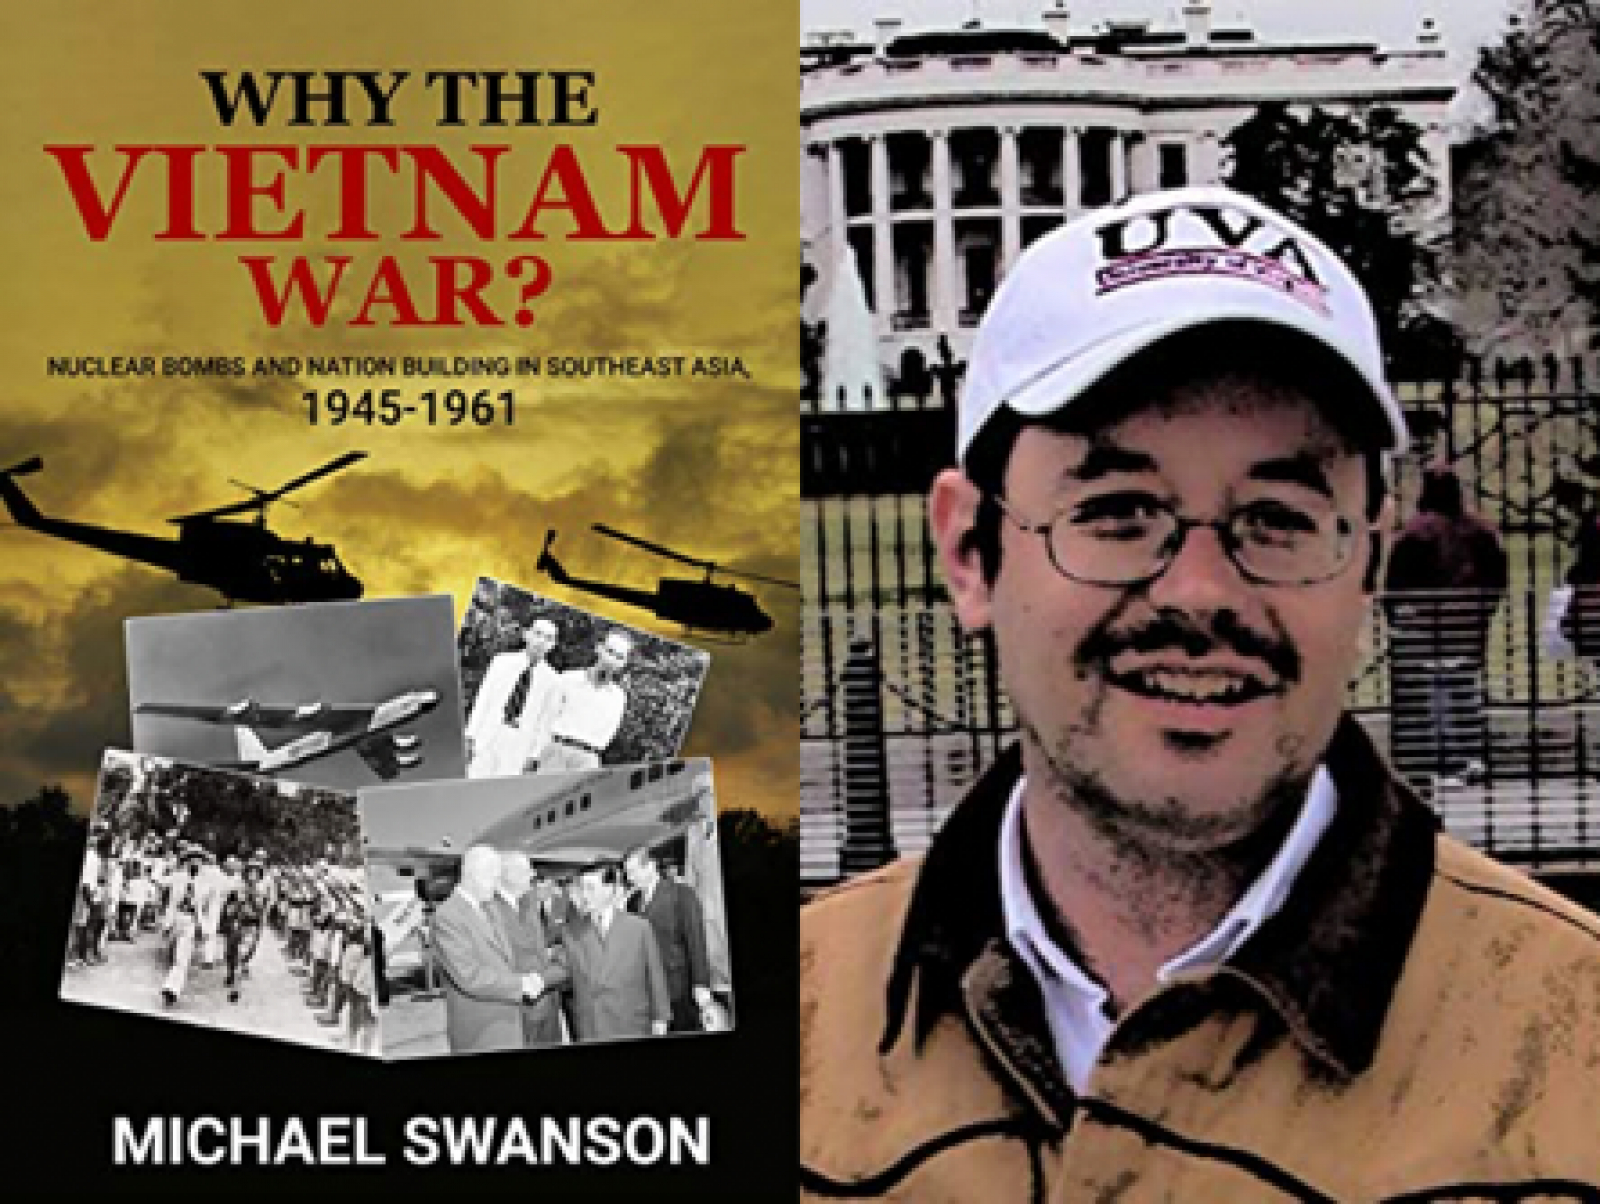 Why the Vietnam War? by Michael Swanson